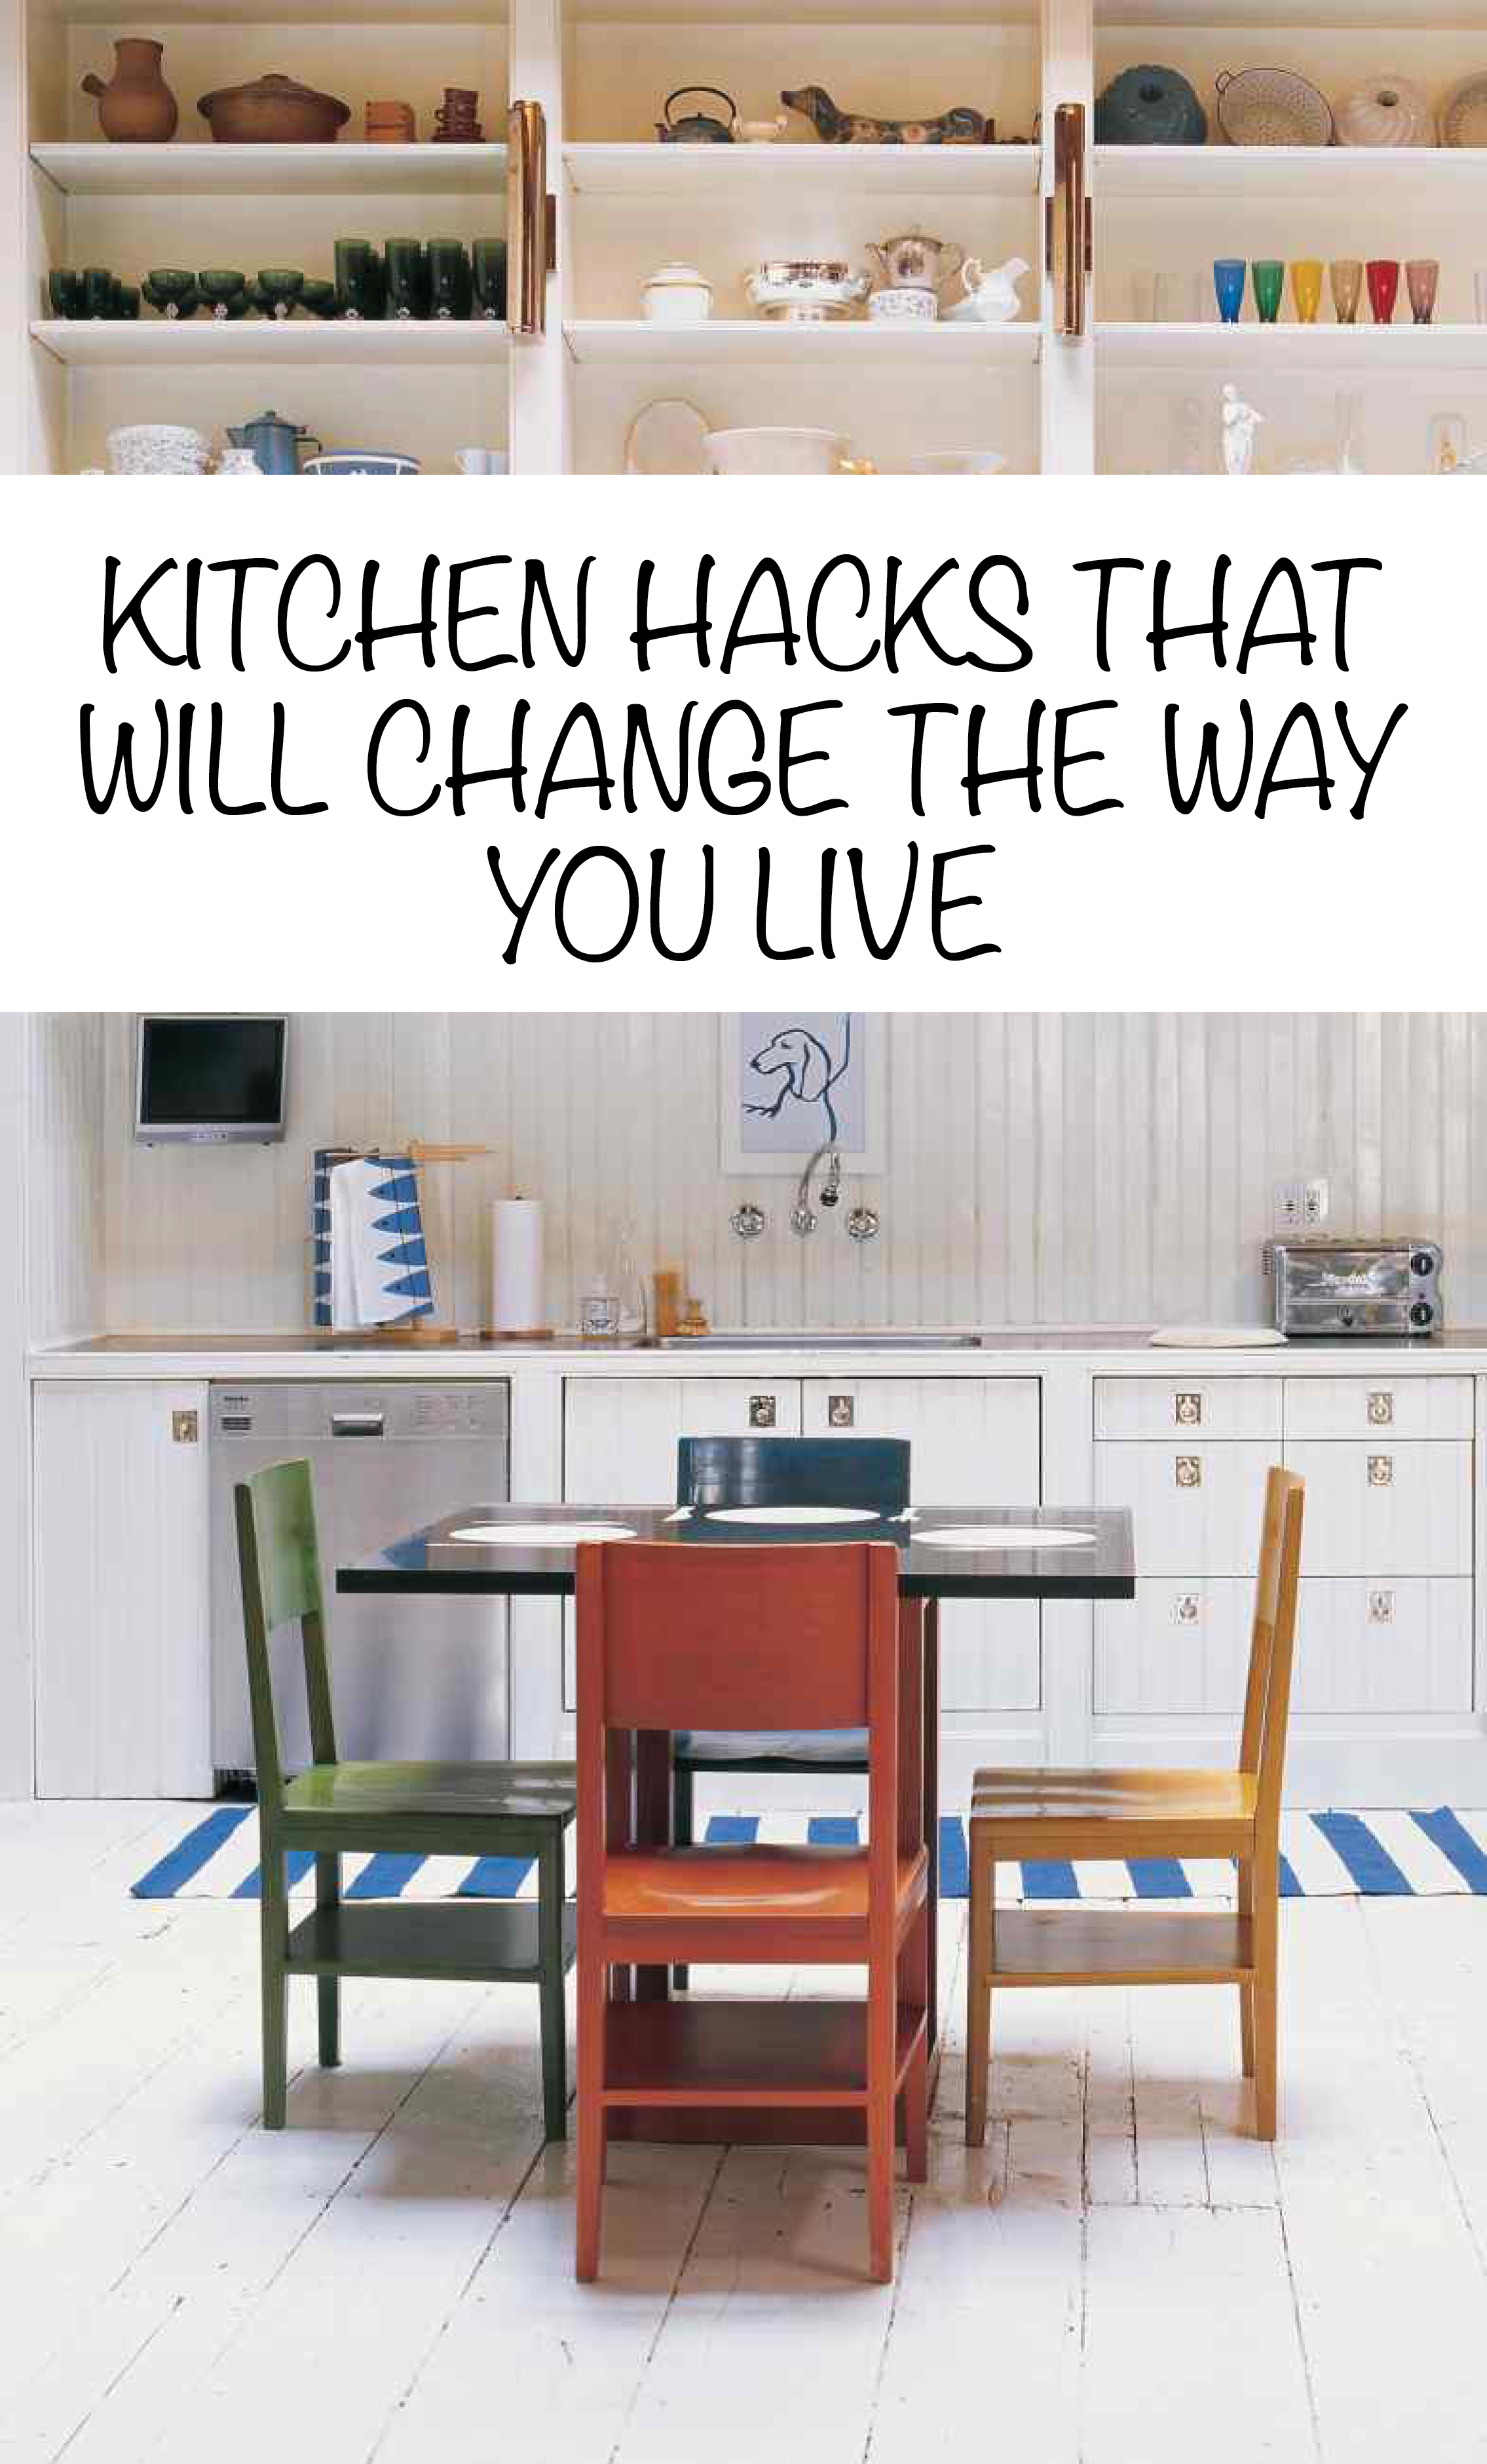 genius kitchen hacks that will change the way you live | martha